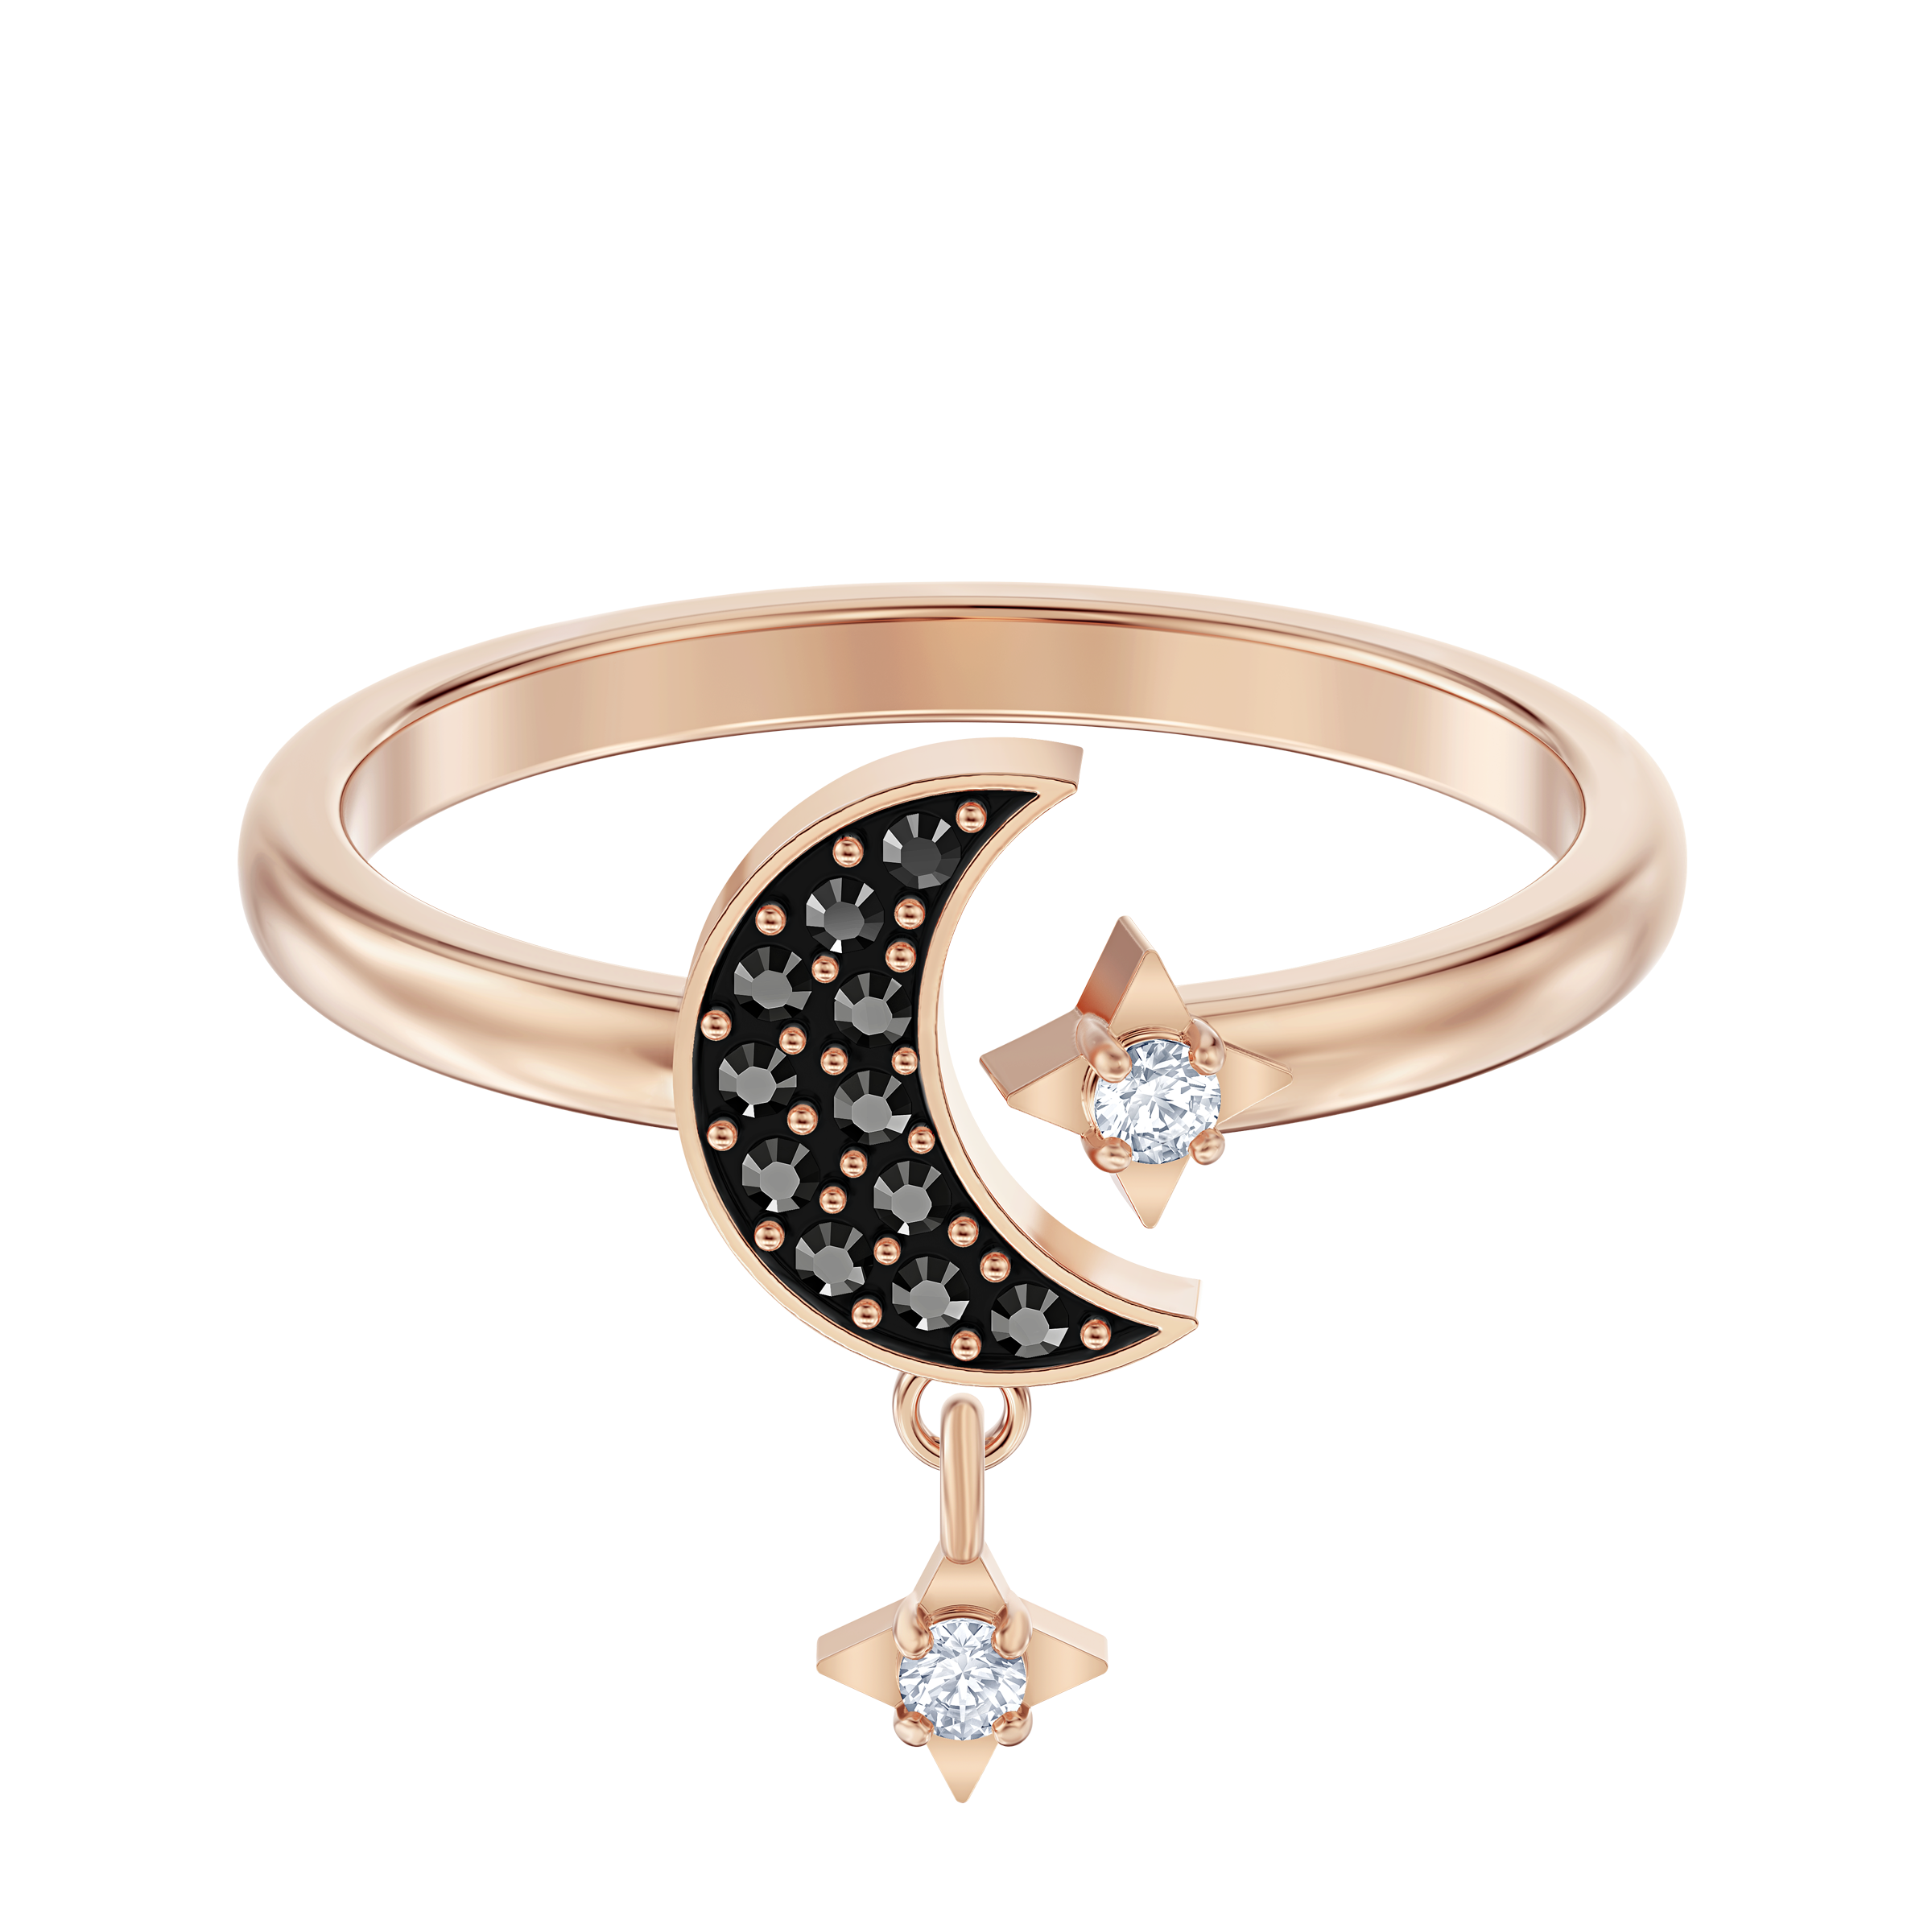 Swarovski Symbolic Moon Motif Ring, Black, Rose-gold tone plated